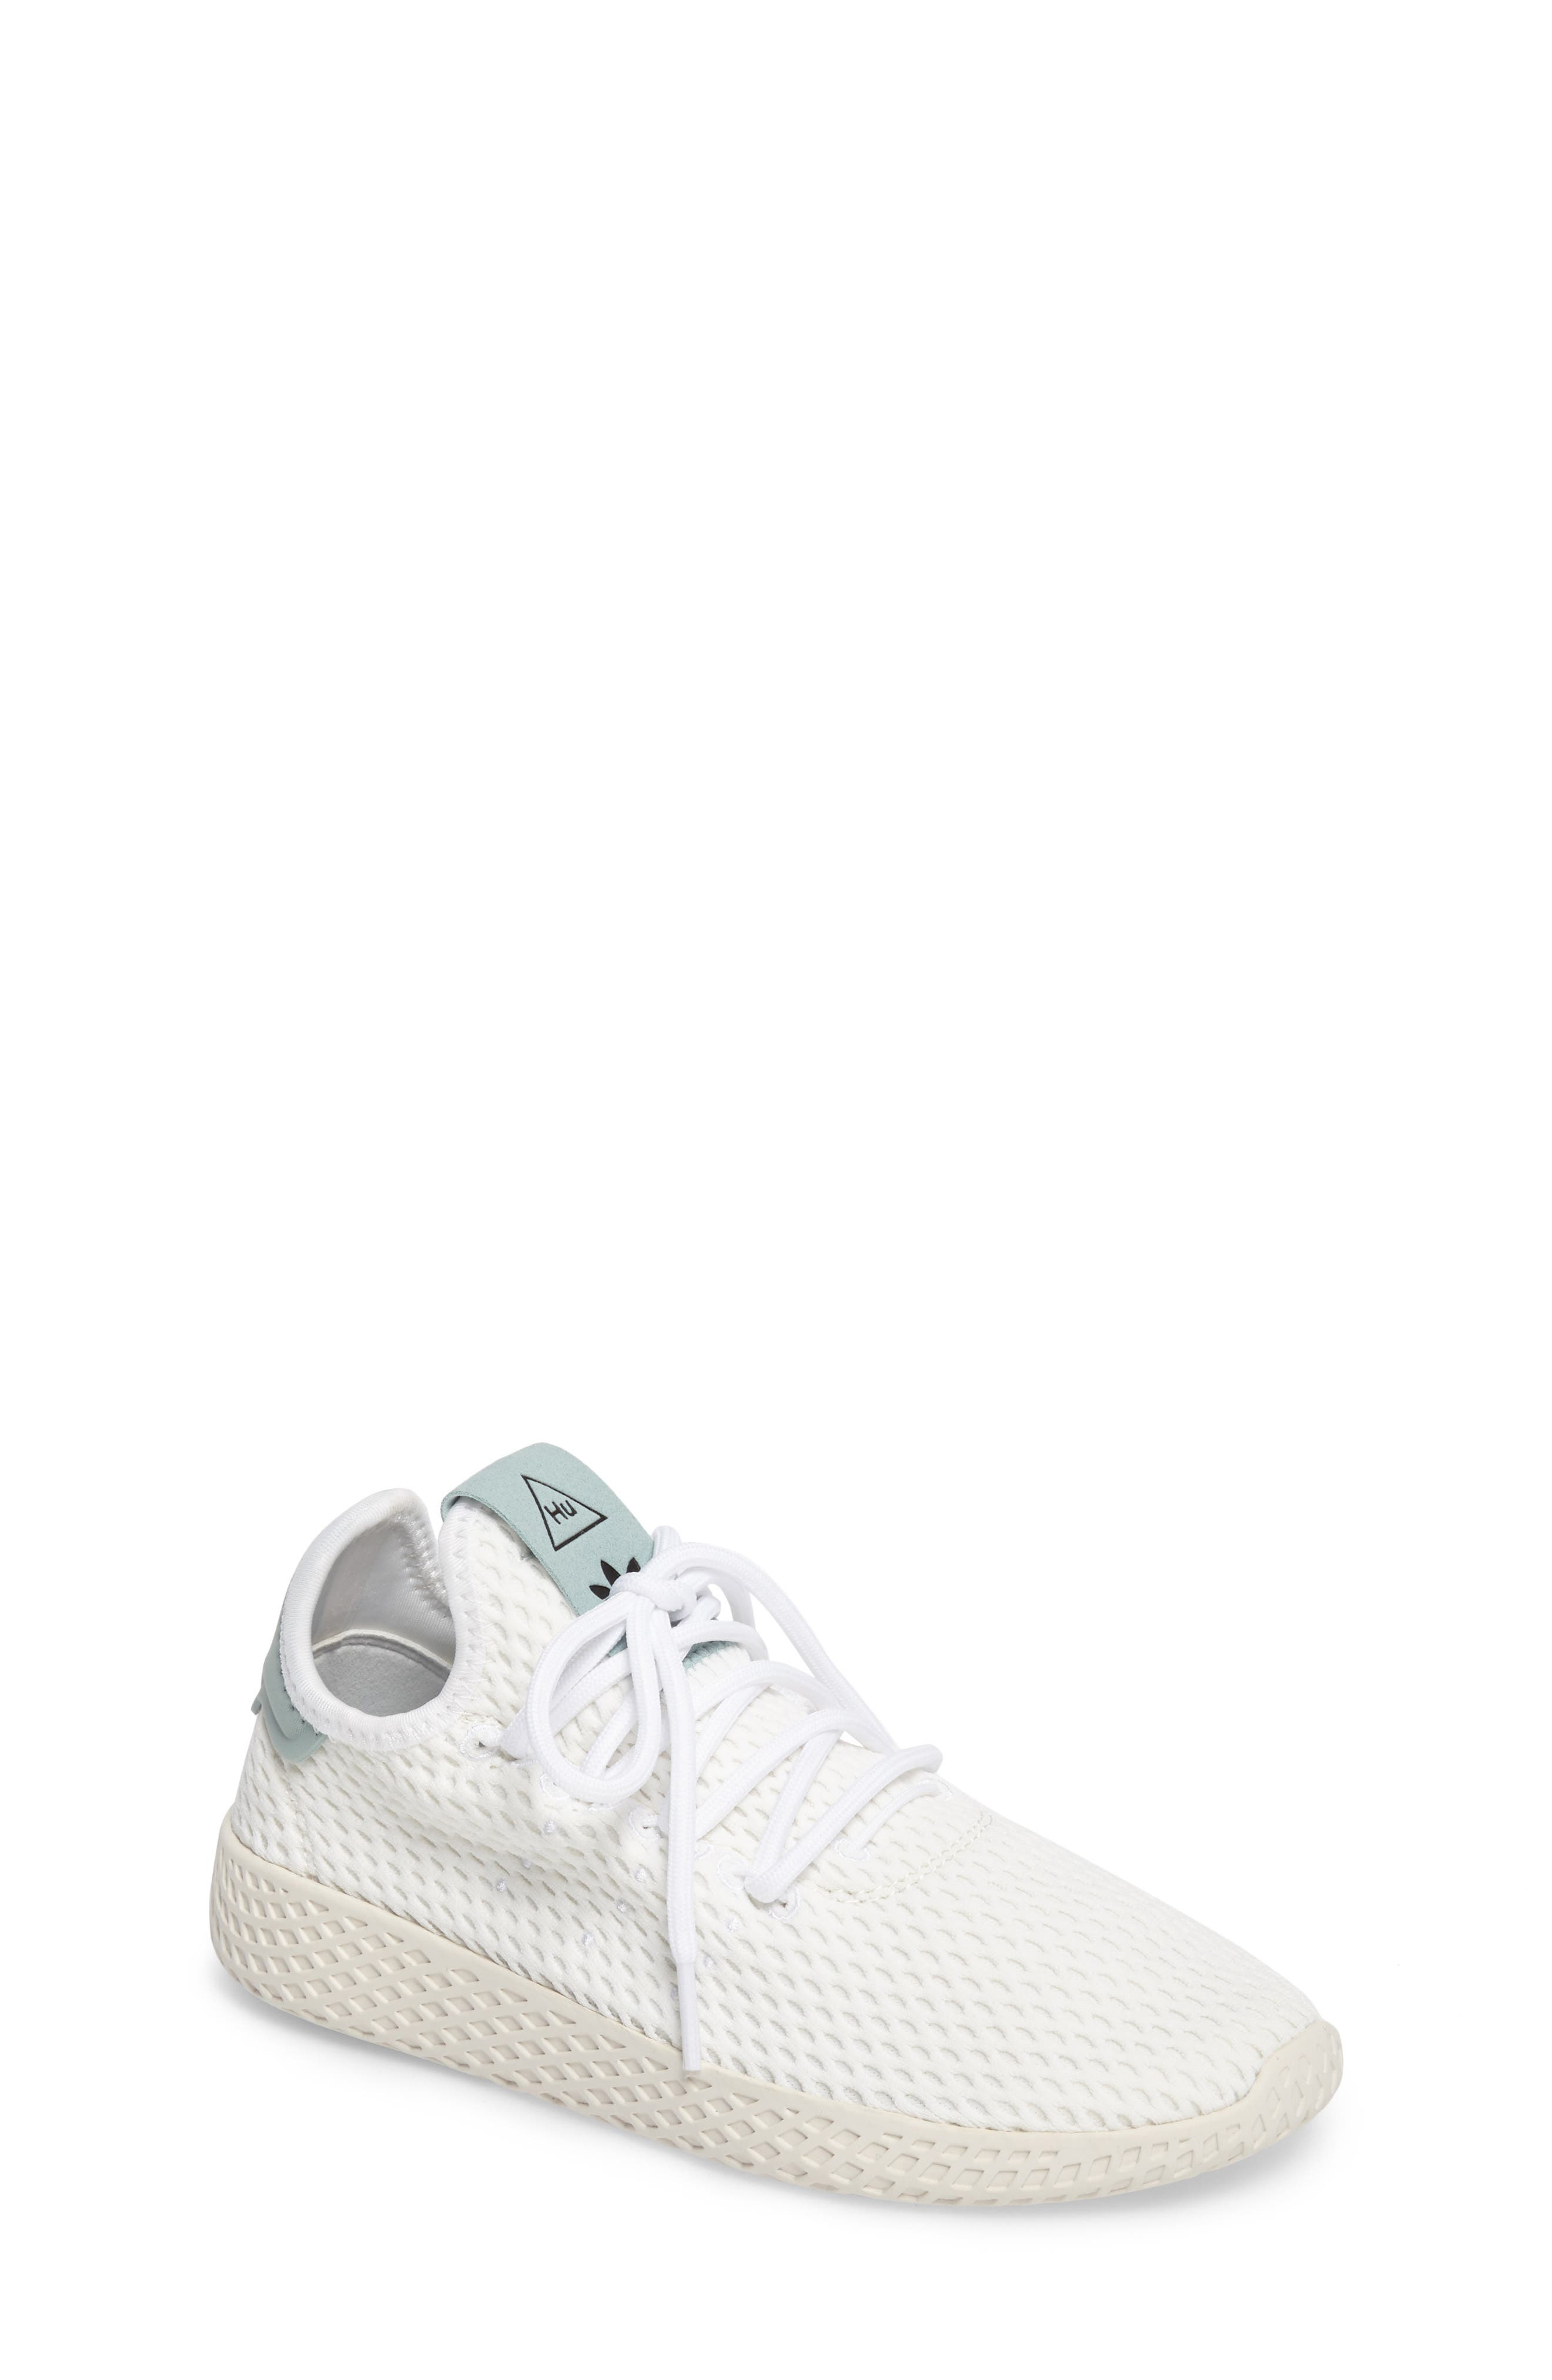 Originals x Pharrell Williams The Summers Mesh Sneaker,                         Main,                         color, Footwear White/ Linen Green